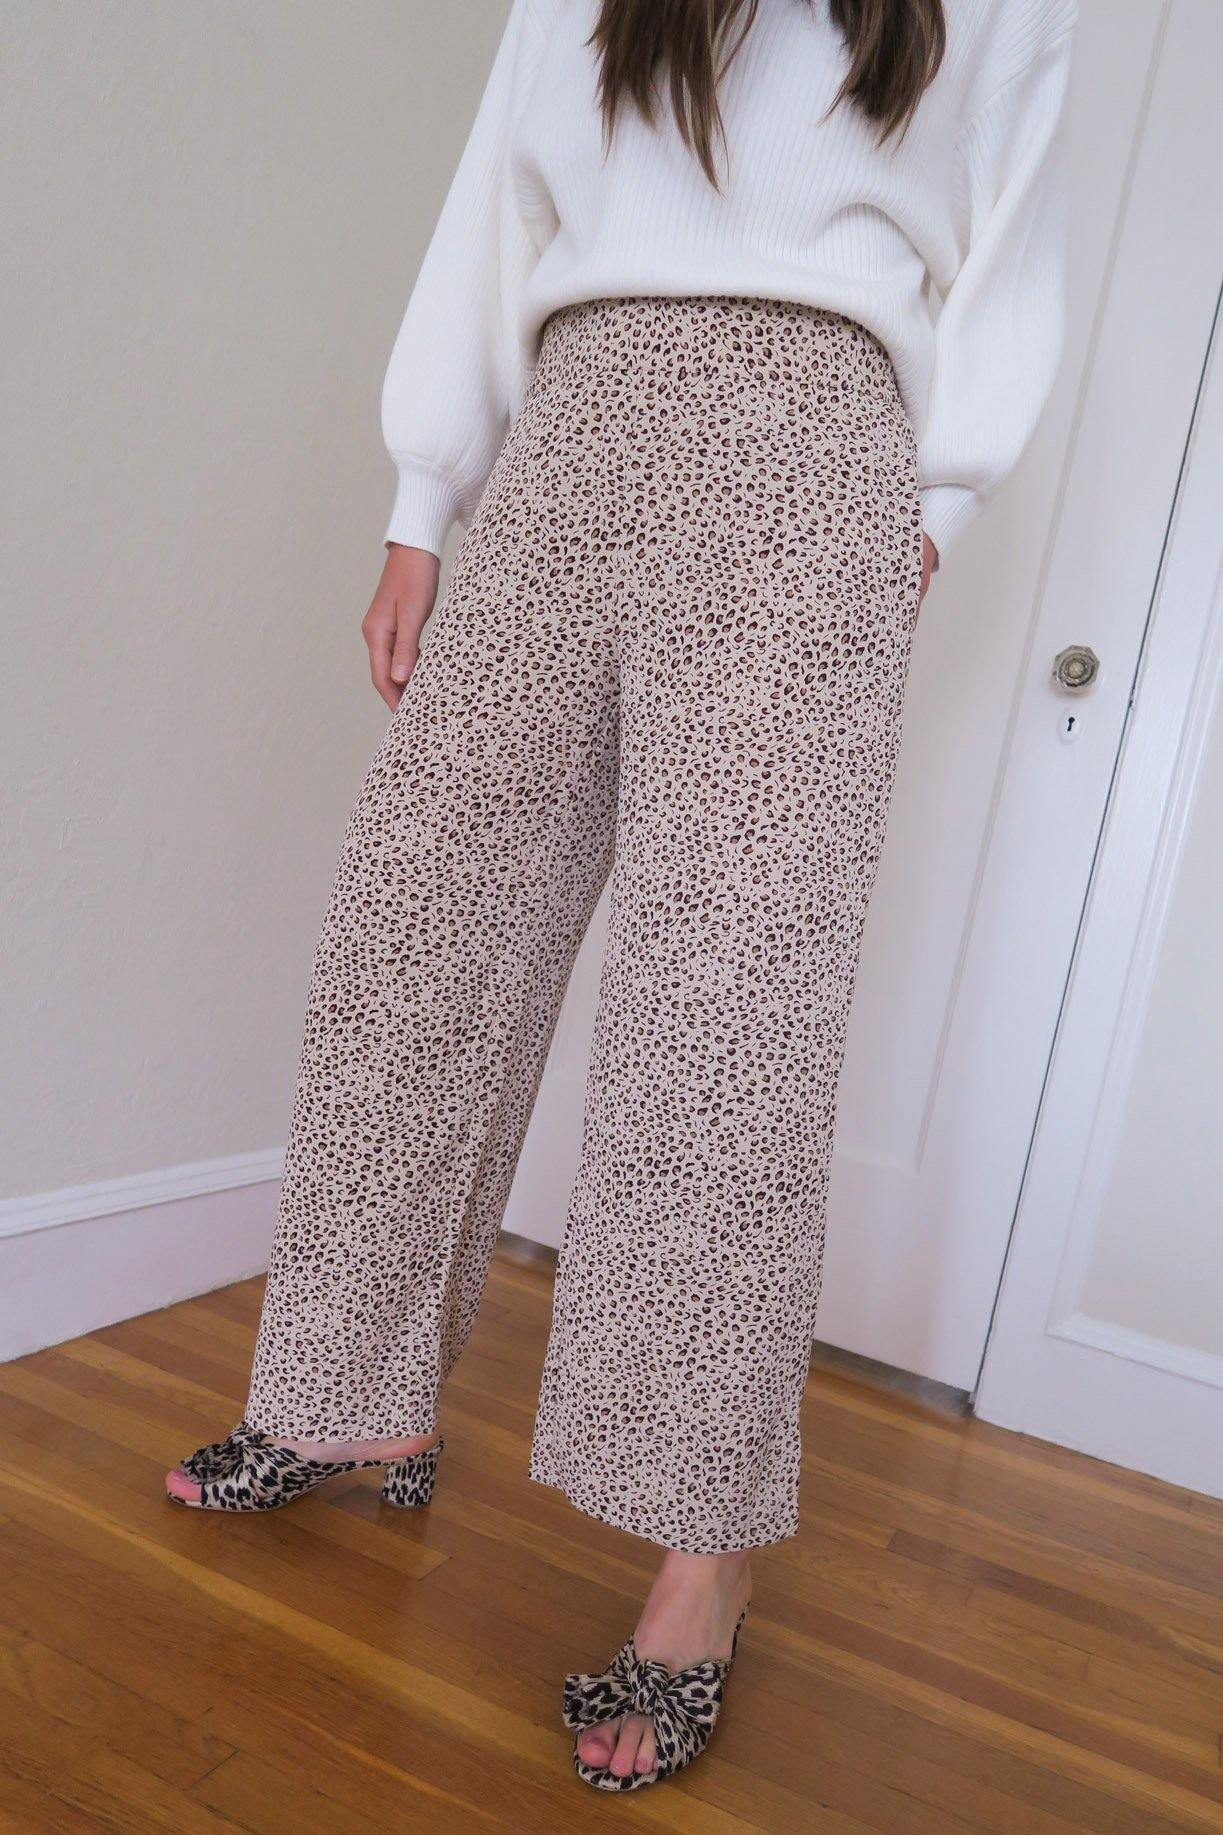 Cheetah Print Pants from Sweet and Spark.